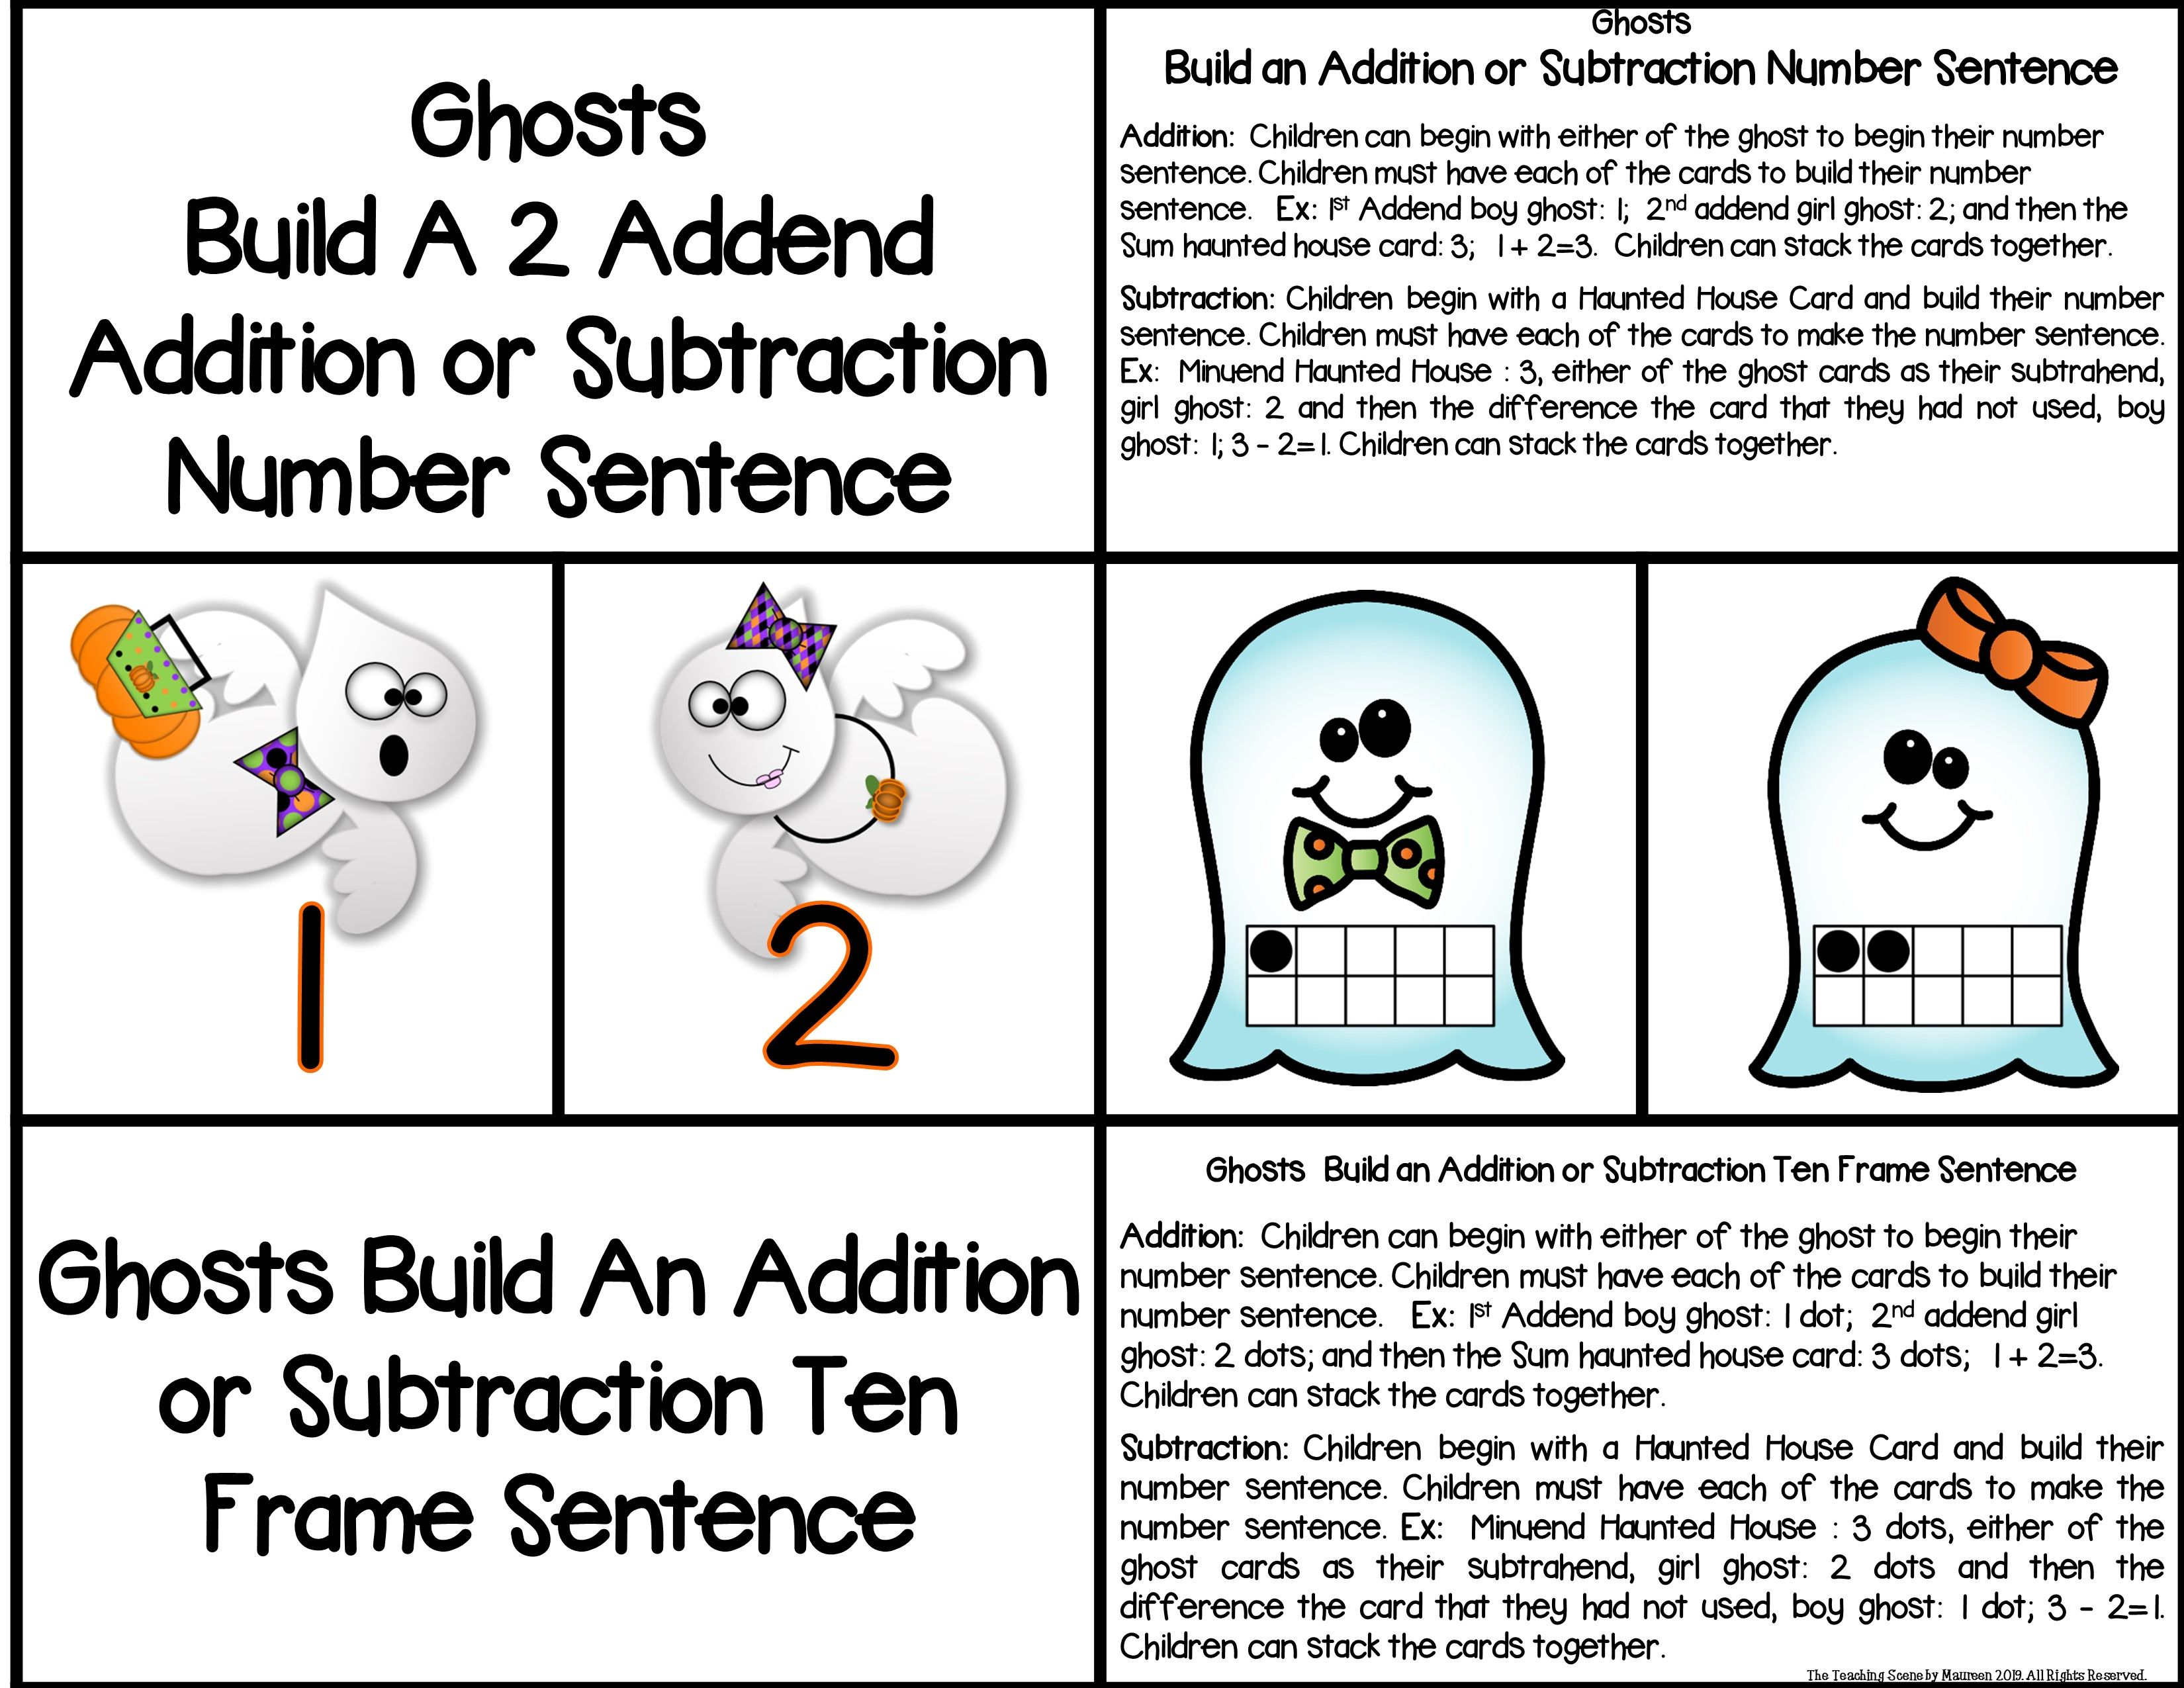 Ghosts Build A 2 Addend Number Sentence With Ten Frames